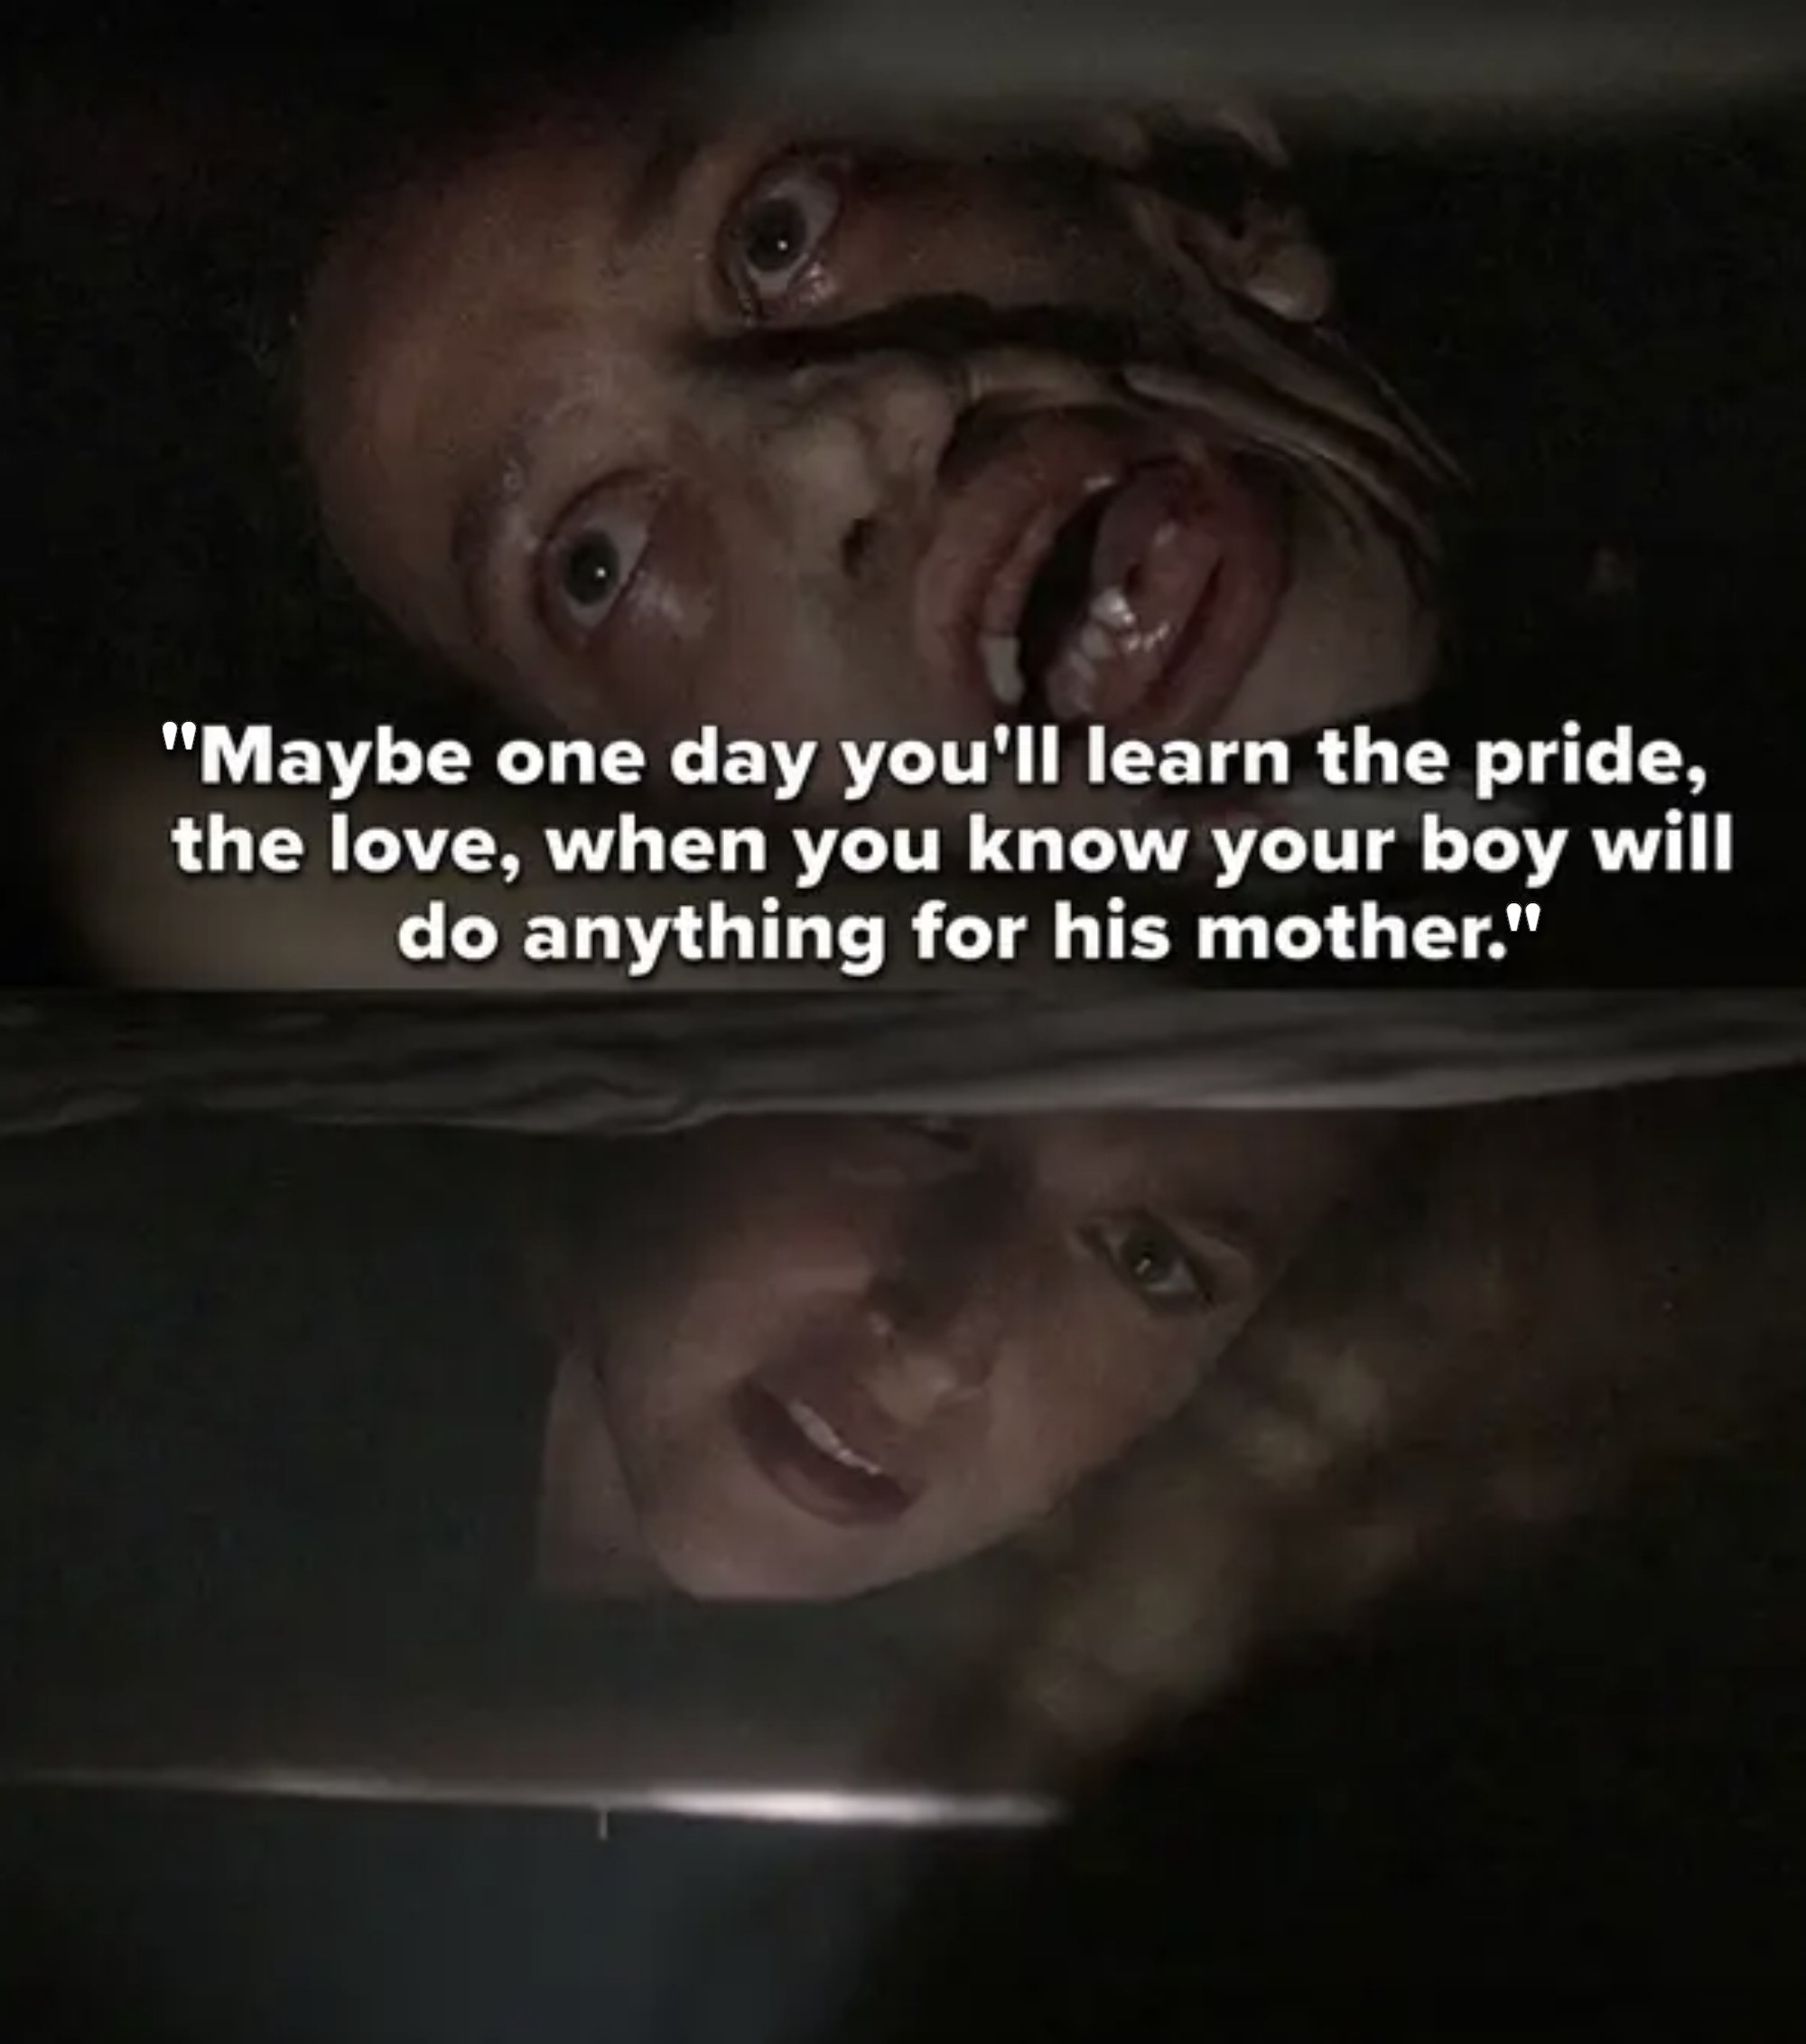 """the mother tells Scully """"Maybe one day you'll learn the pride, the love, when you know your body will do anything for his mother"""""""